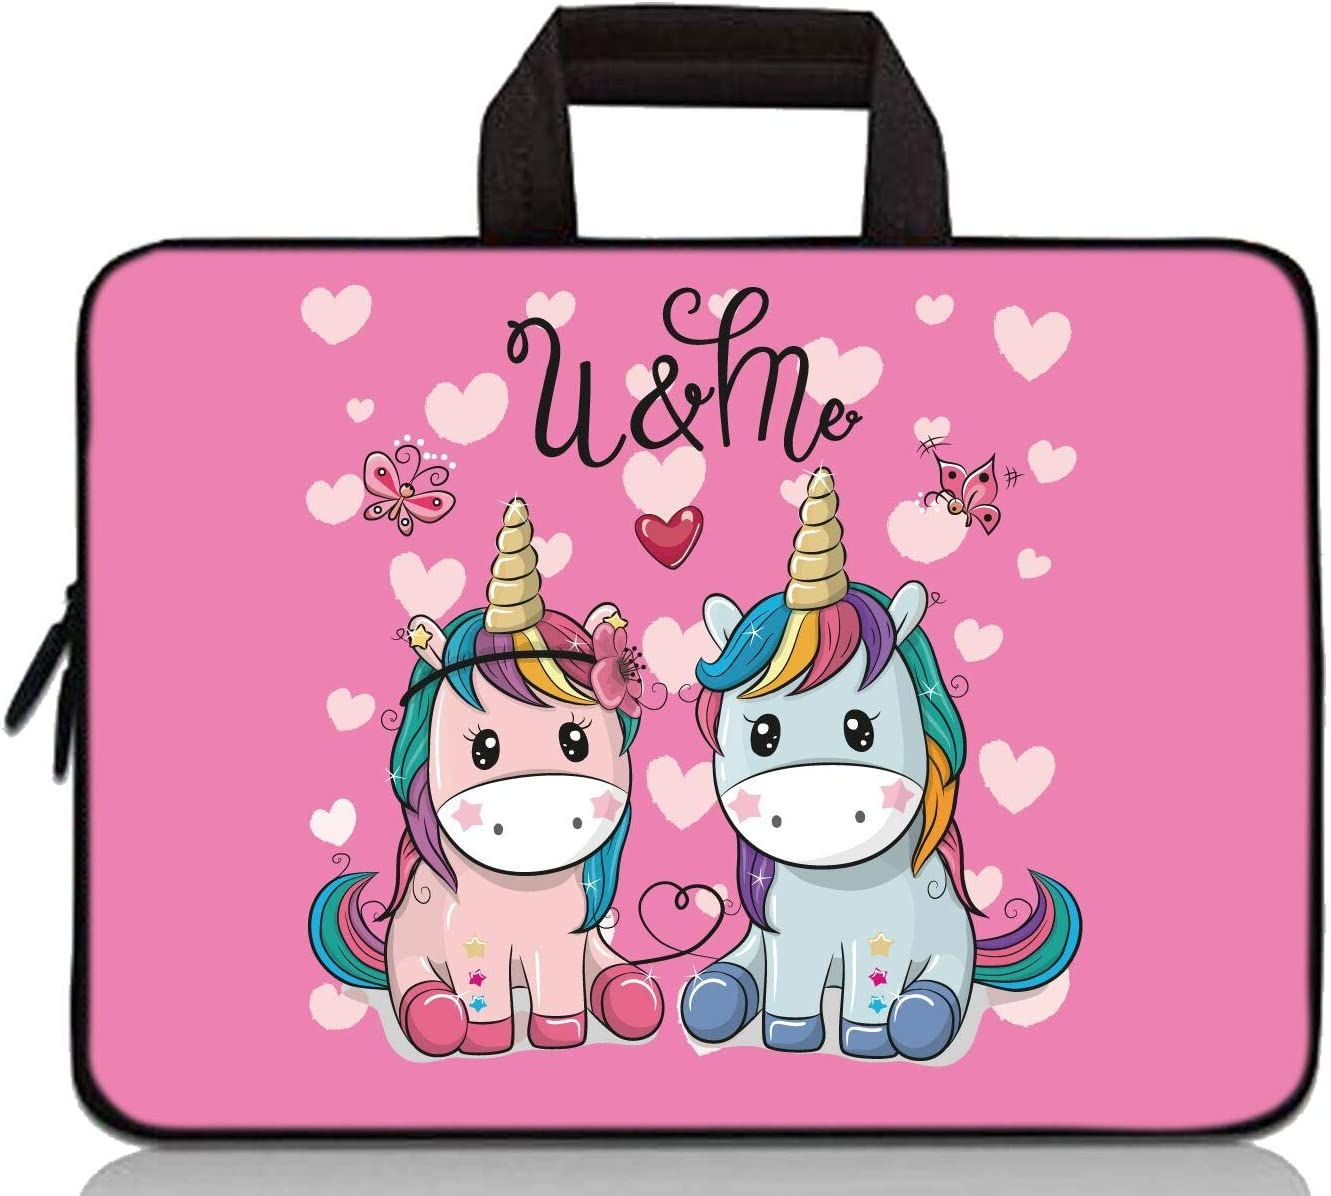 14 15 15.4 15.6 inch Laptop Handle Bag Computer Protect Case Pouch Holder Notebook Sleeve Neoprene Cover Soft Carrying Travel Case for Dell Lenovo Toshiba HP Chromebook ASUS Acer (Cute Small Unicorns)